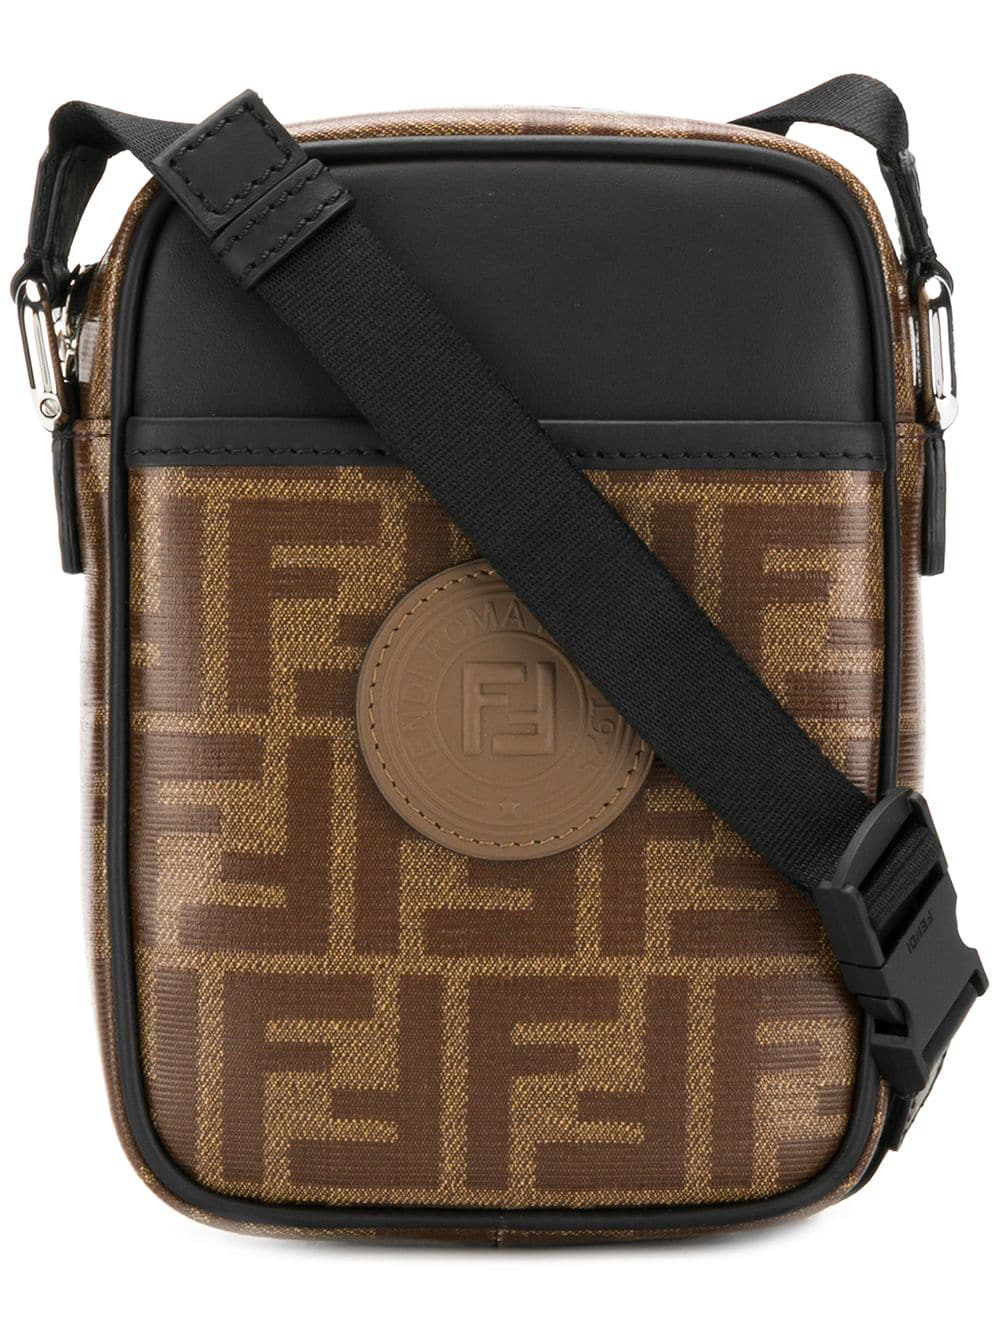 515188bfdfb0 Fendi Double-F Leather Cross-Body Bag In Brown. Farfetch